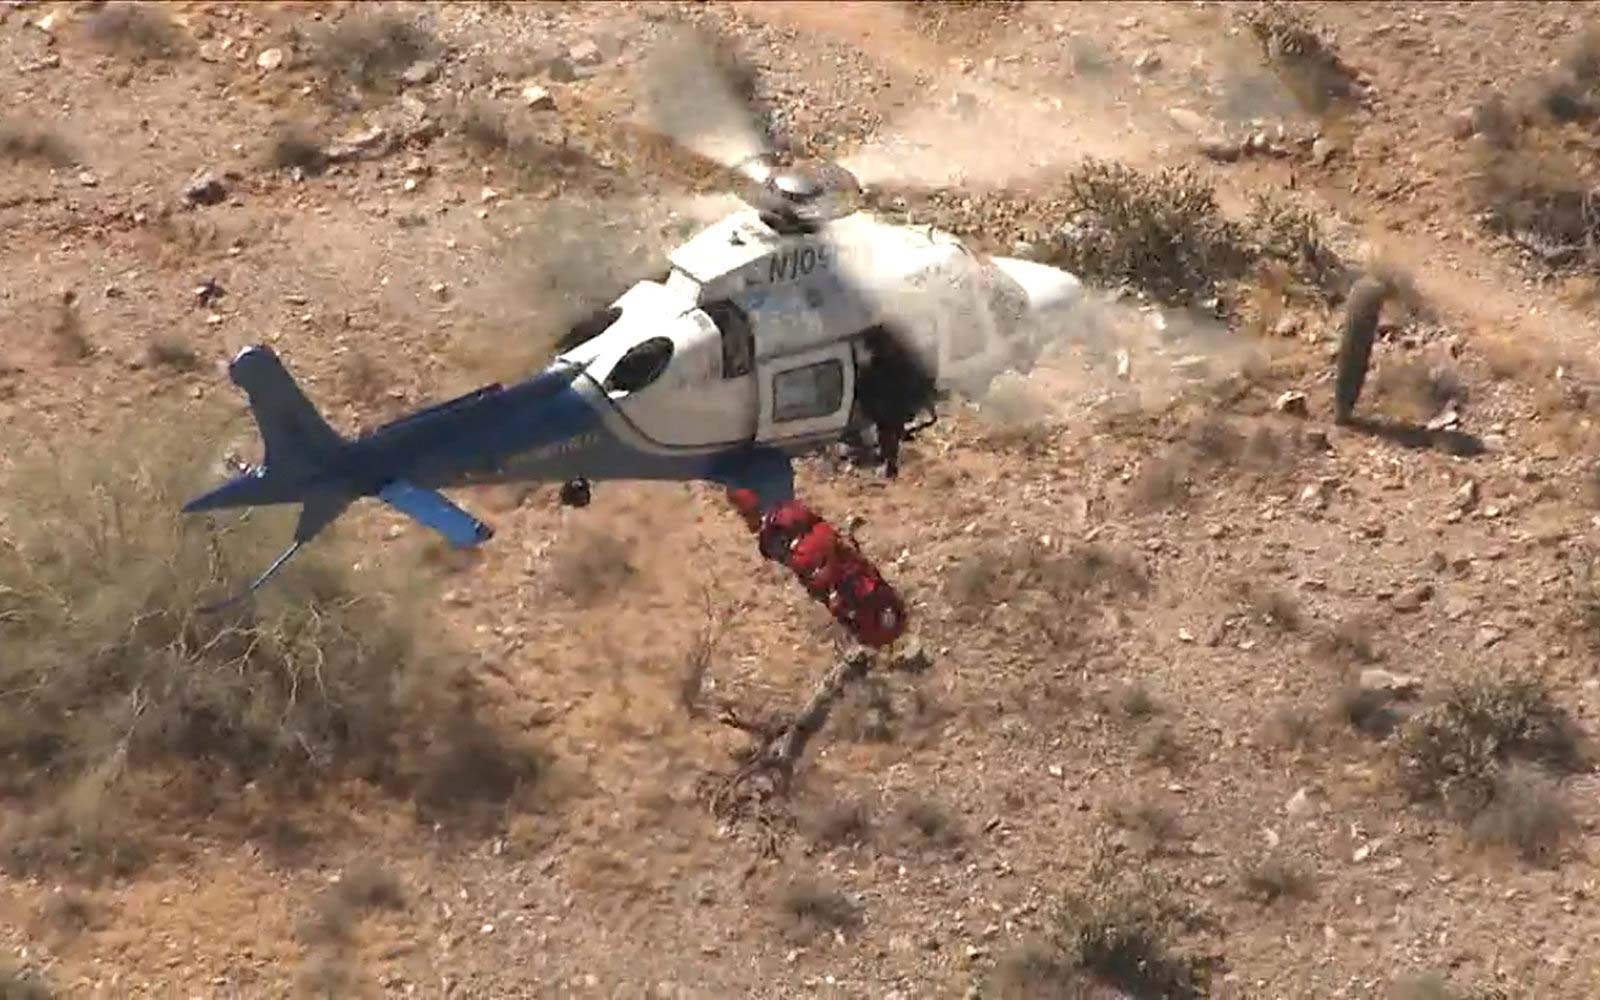 Dramatic Video Shows Moment Helicopter Rescue Mission Turned Into Scary Out-of-control Ride for Hiker